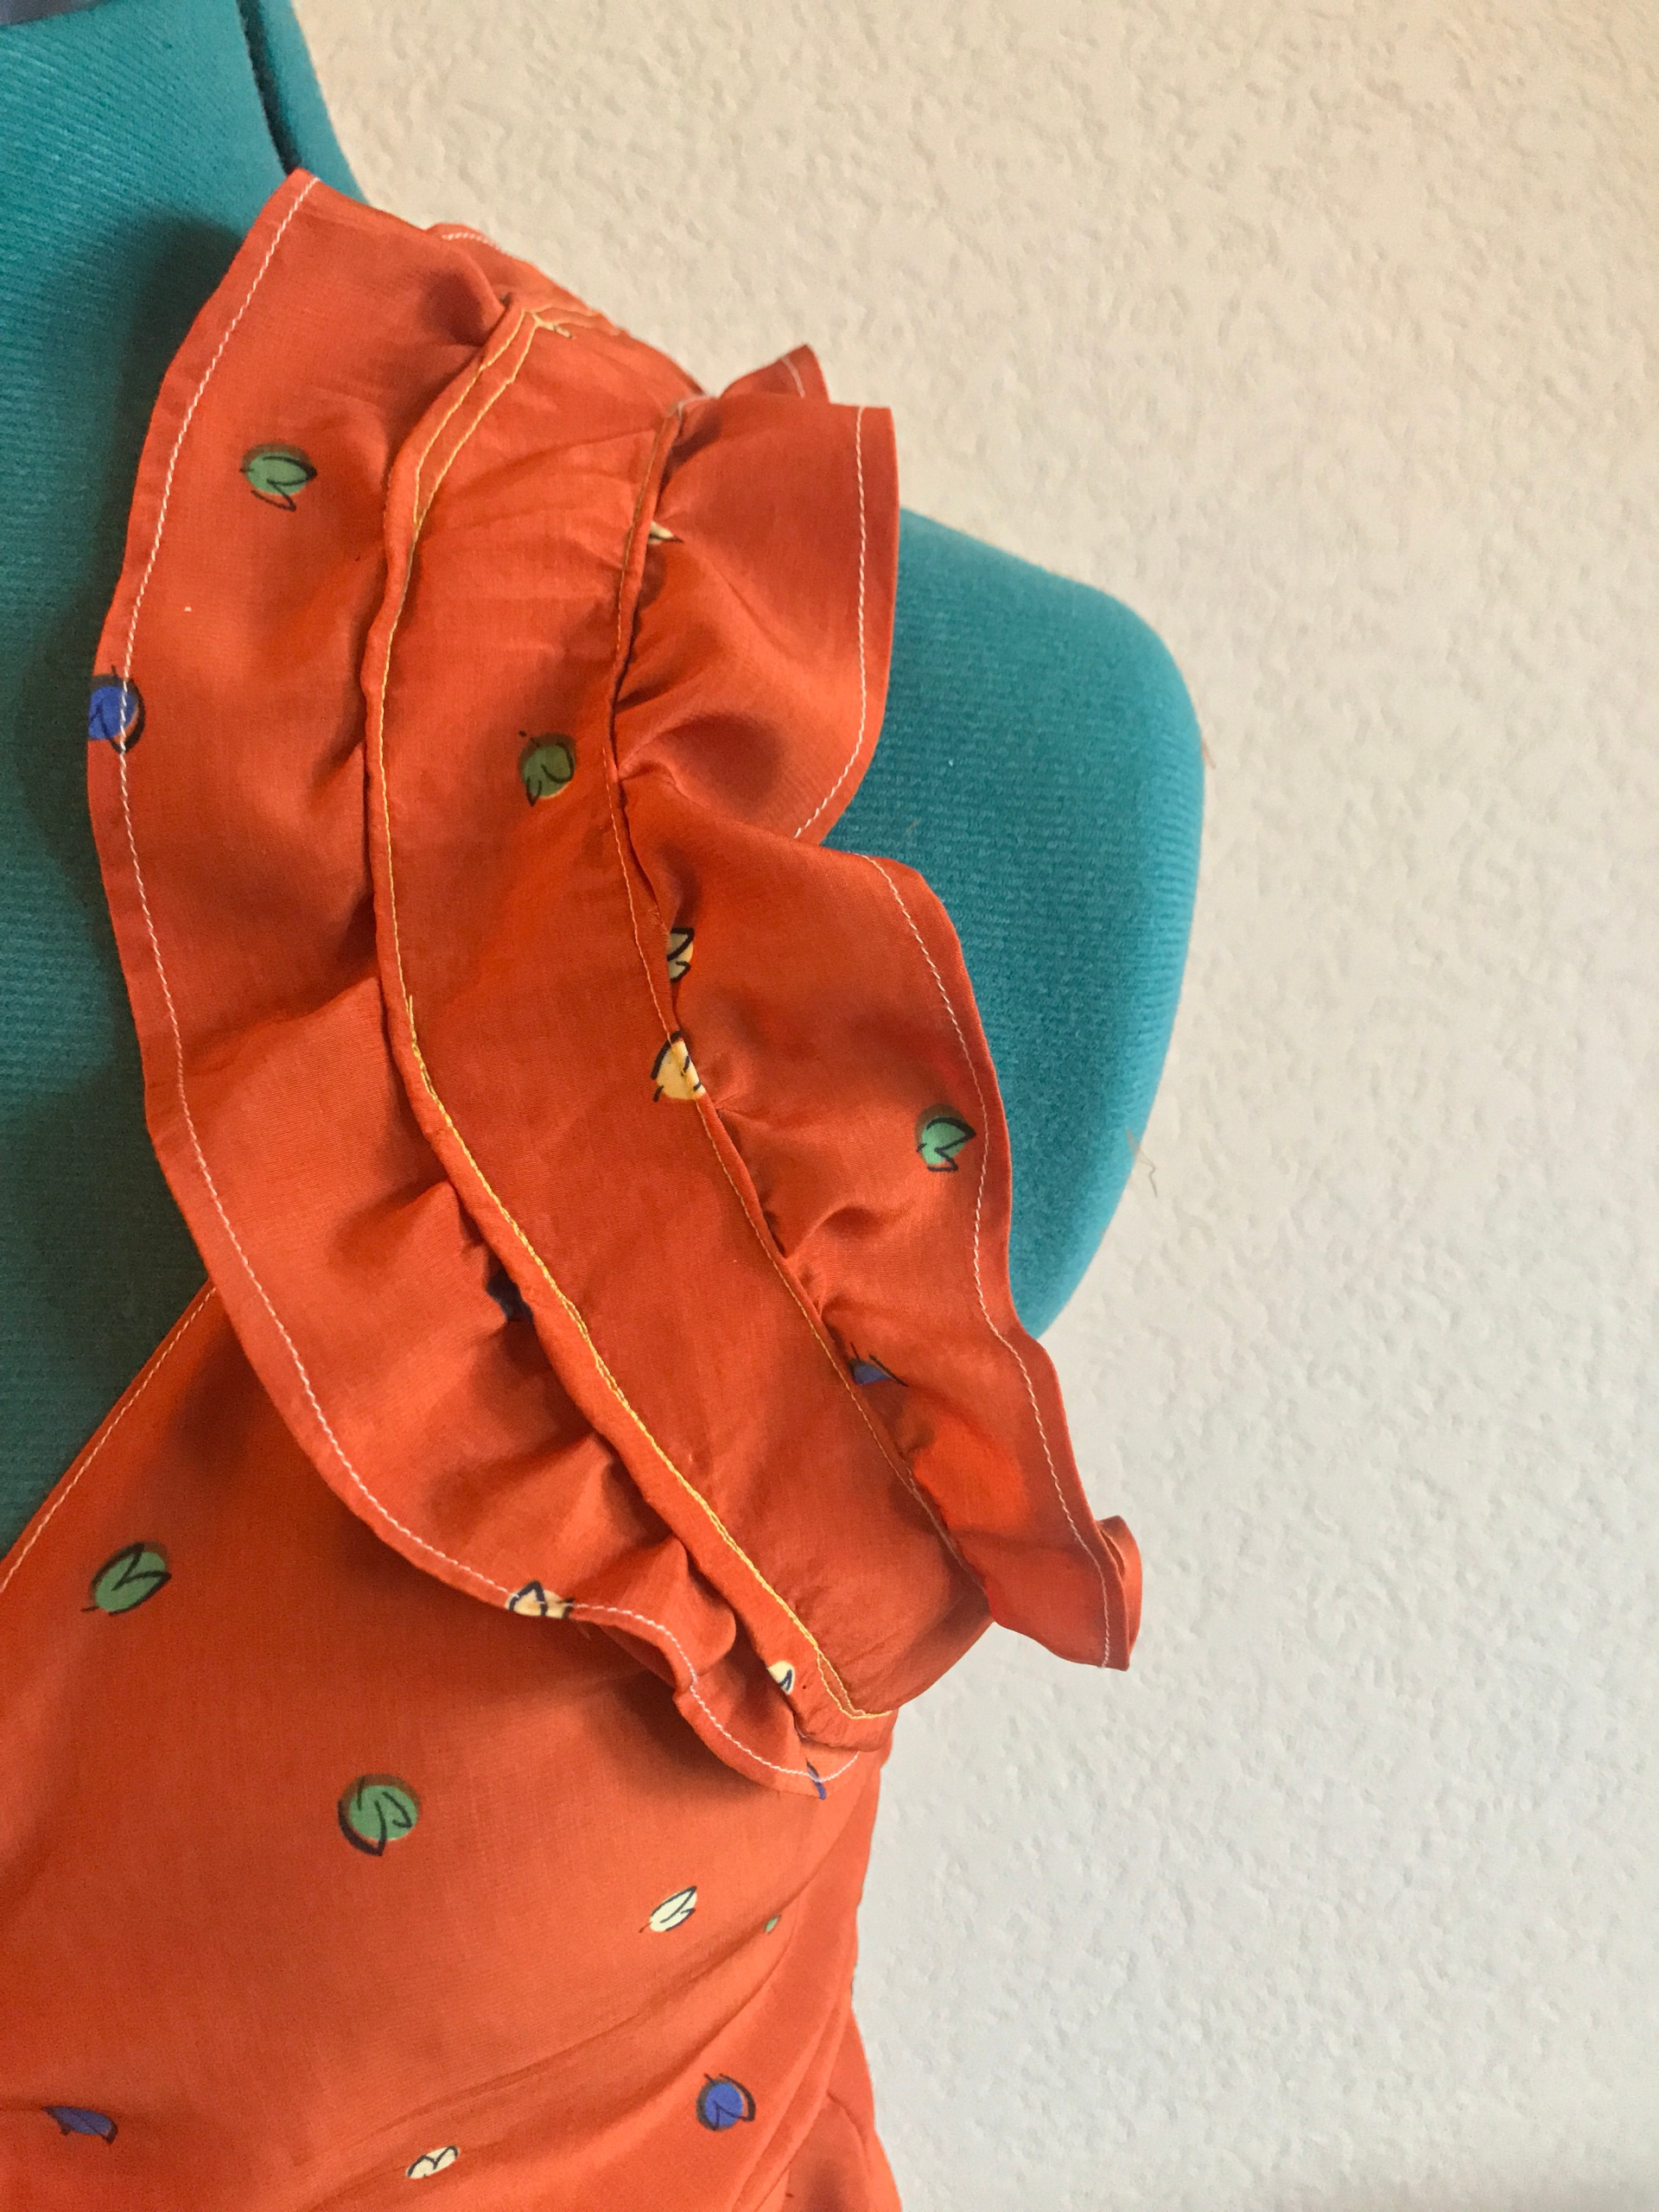 handmade orange printed tank with ruffle sleeves